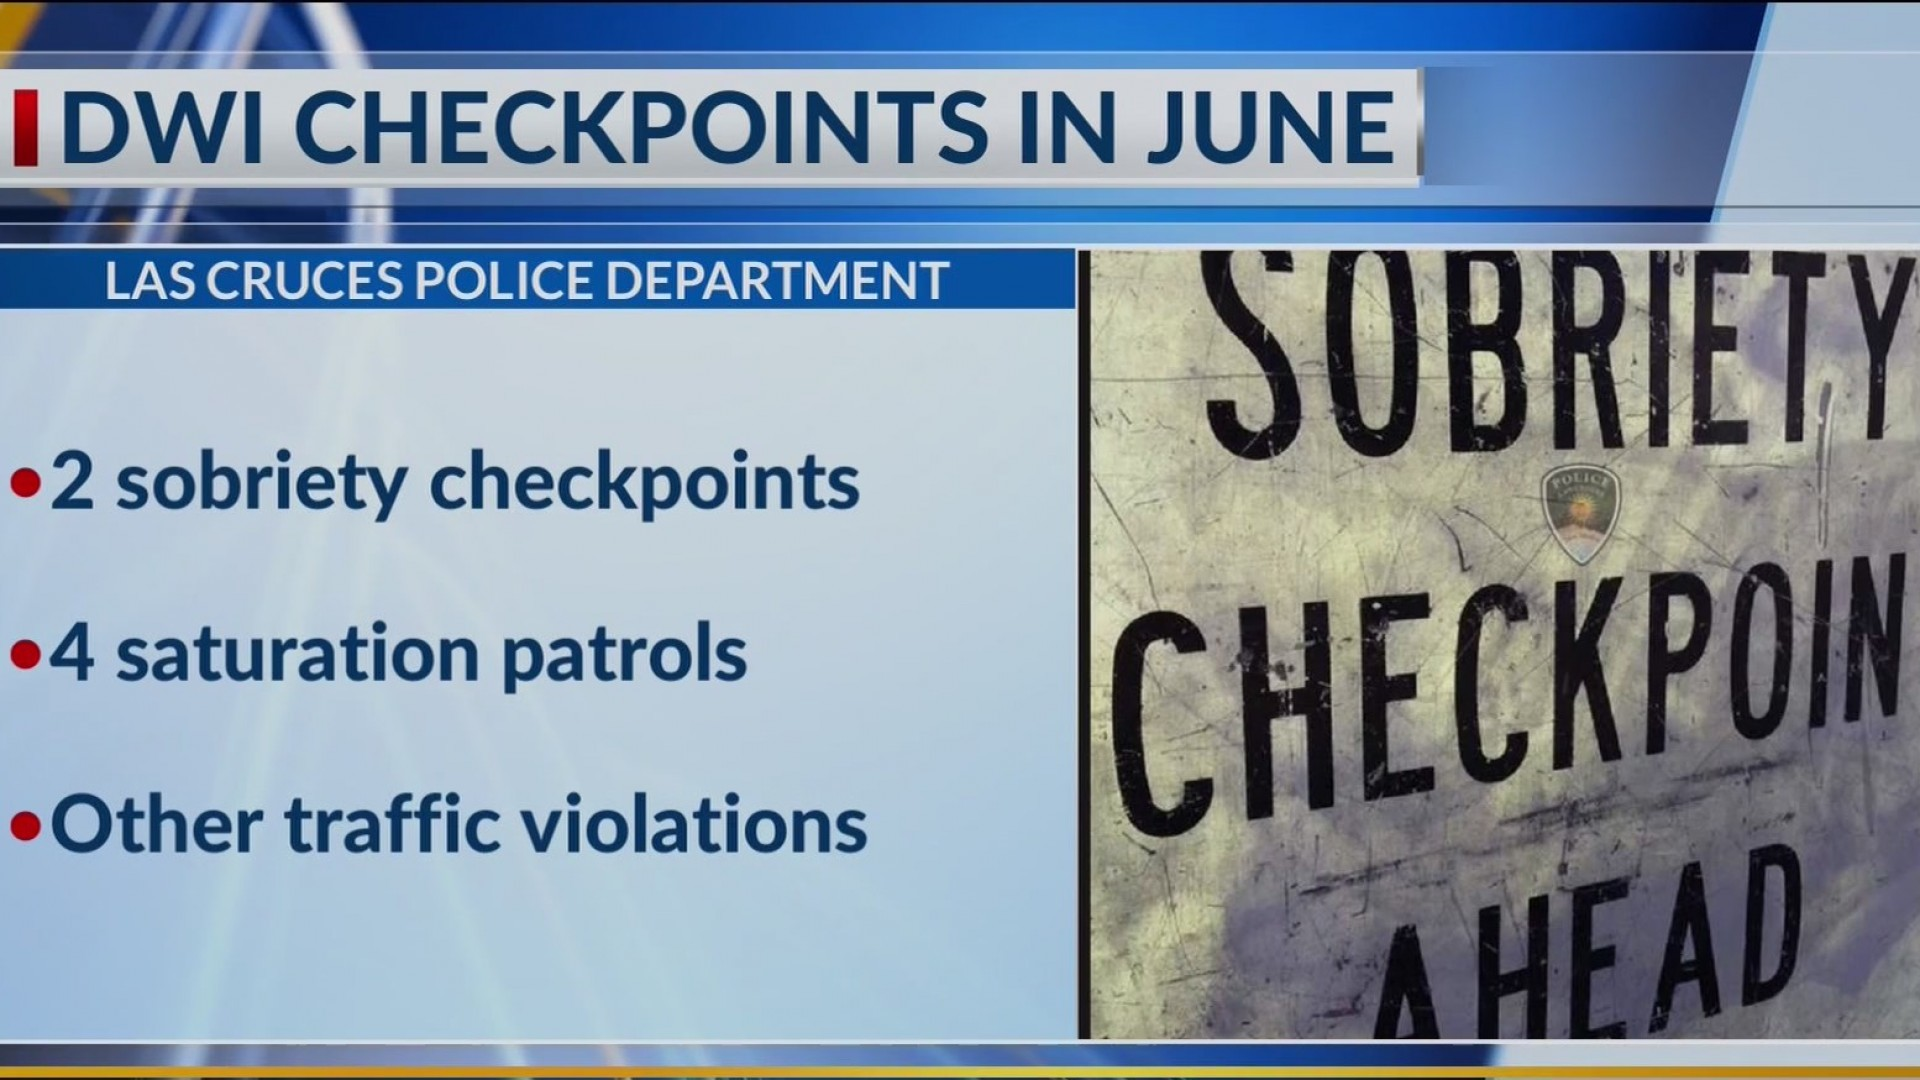 DWI checkpoints planned for June